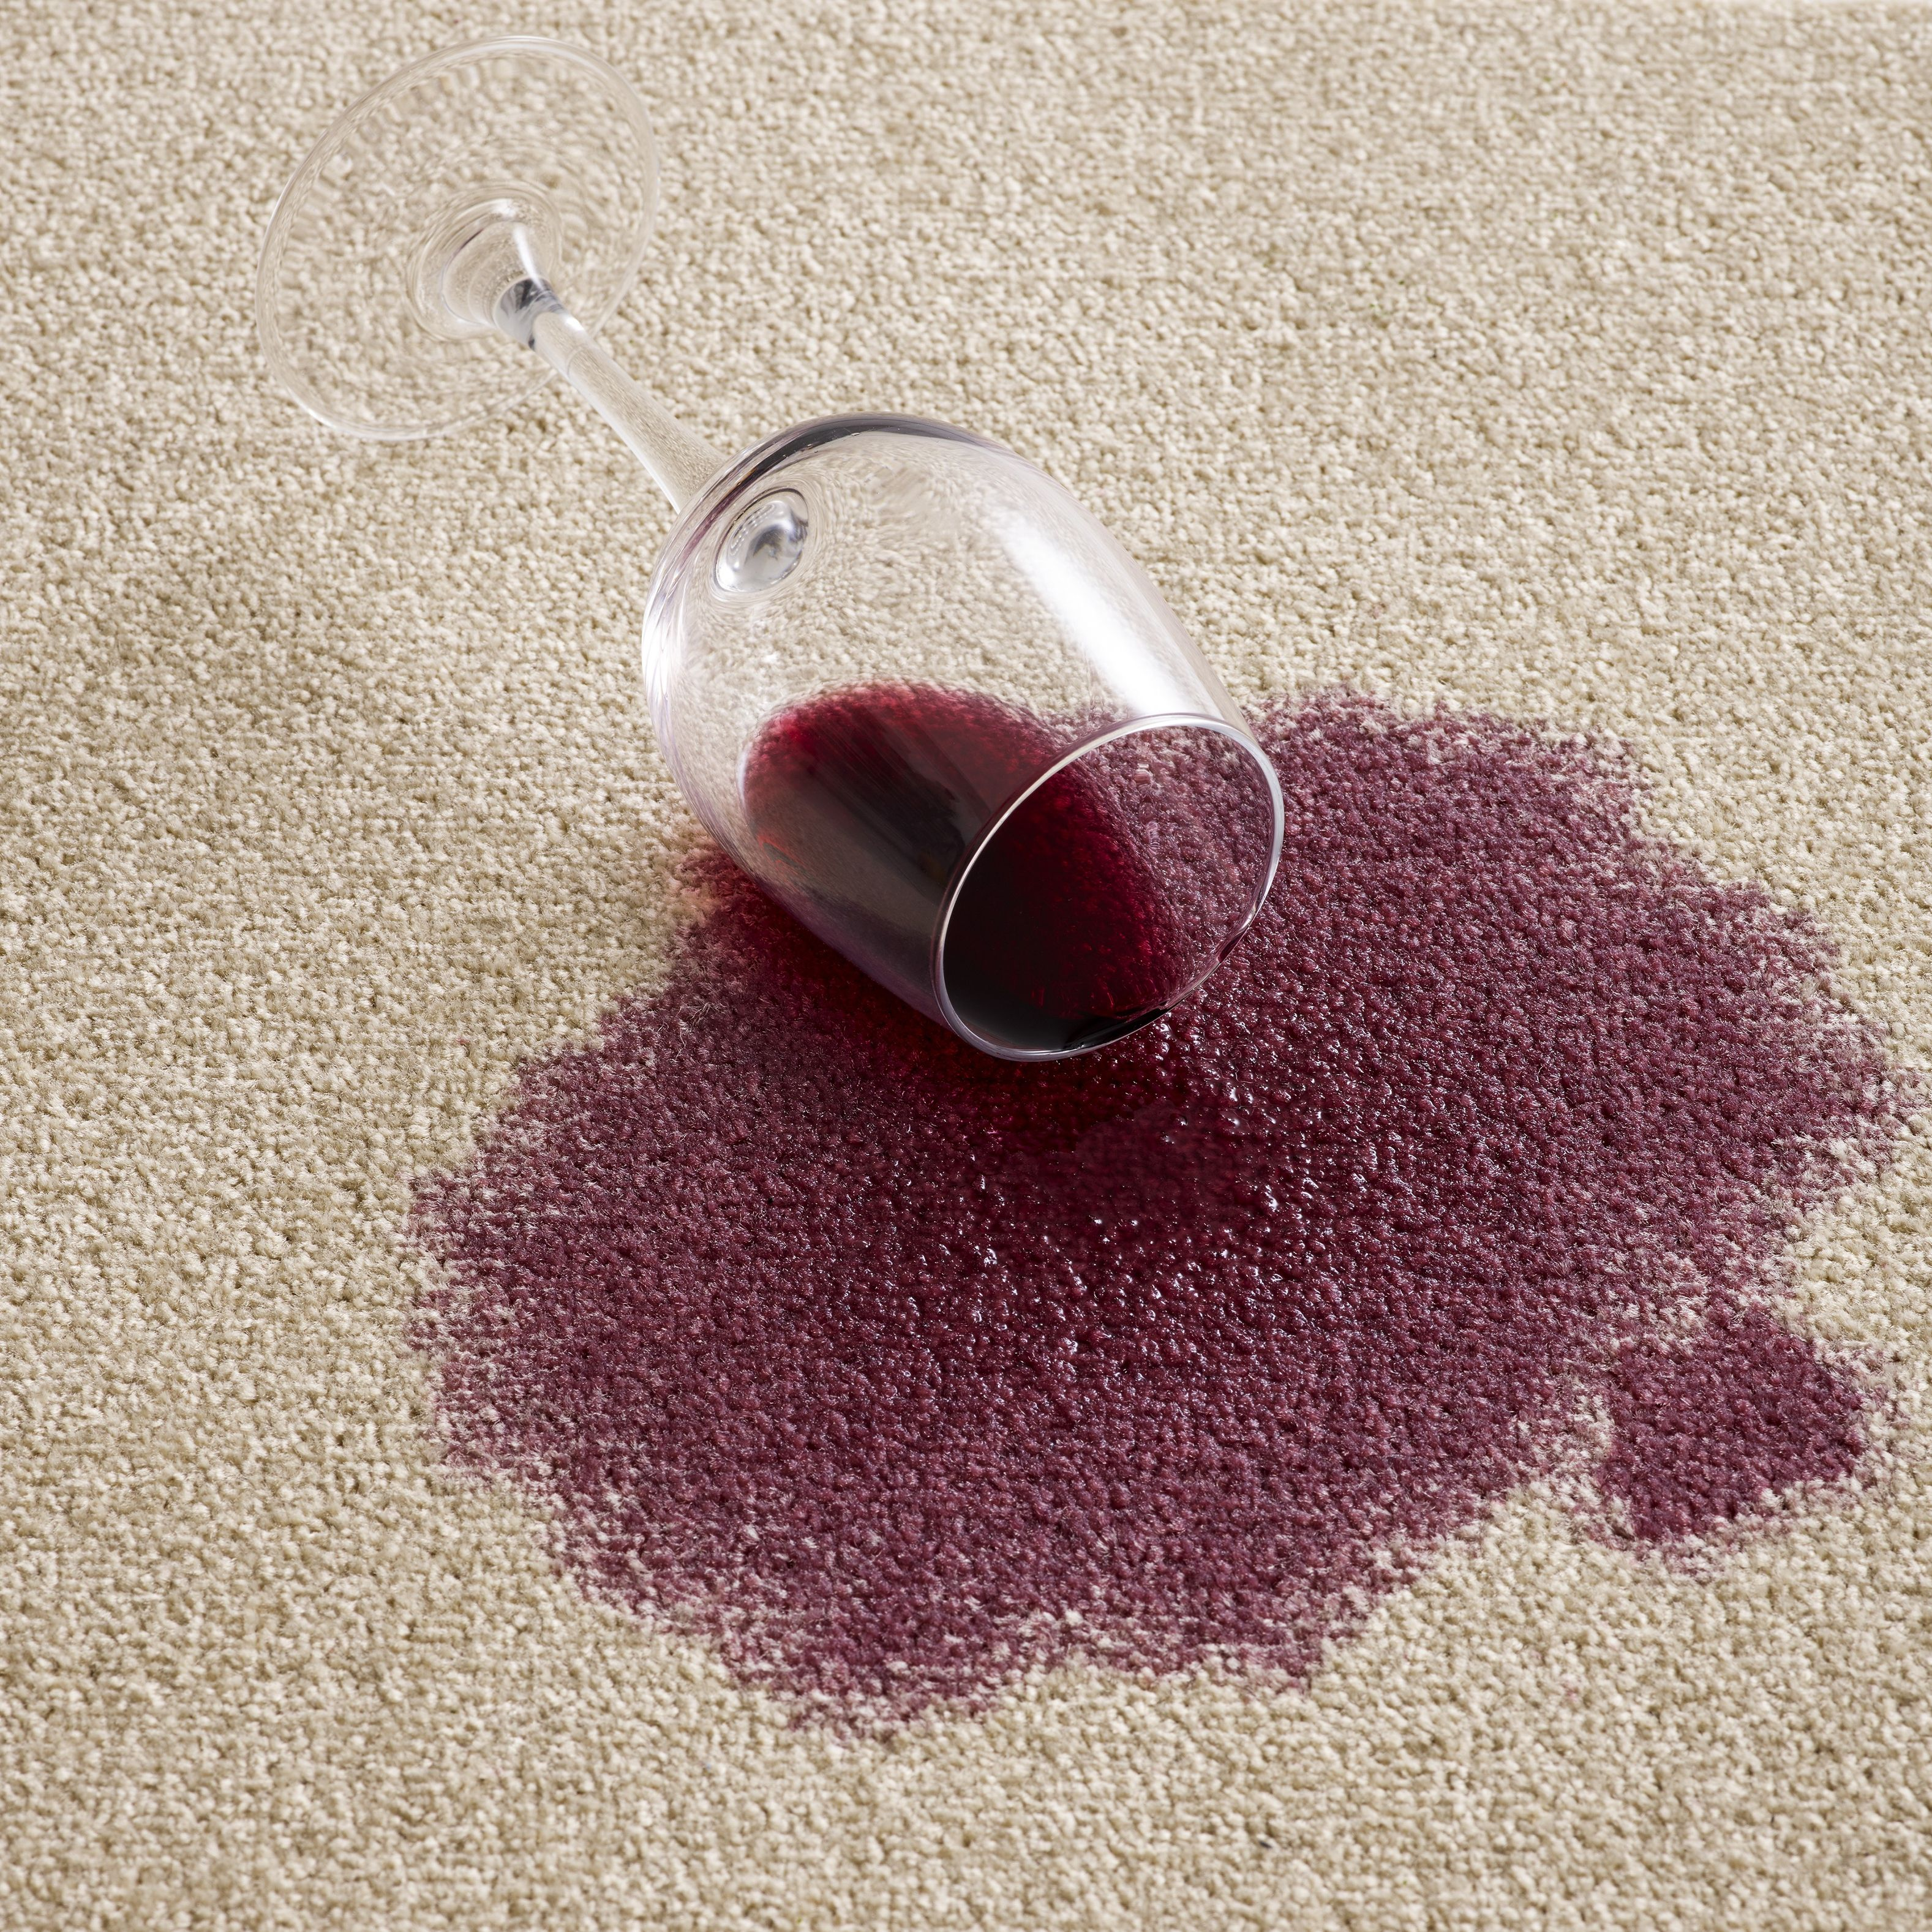 How To Clean Red Wine Stains How To Get Red Wine Out Of Carpet